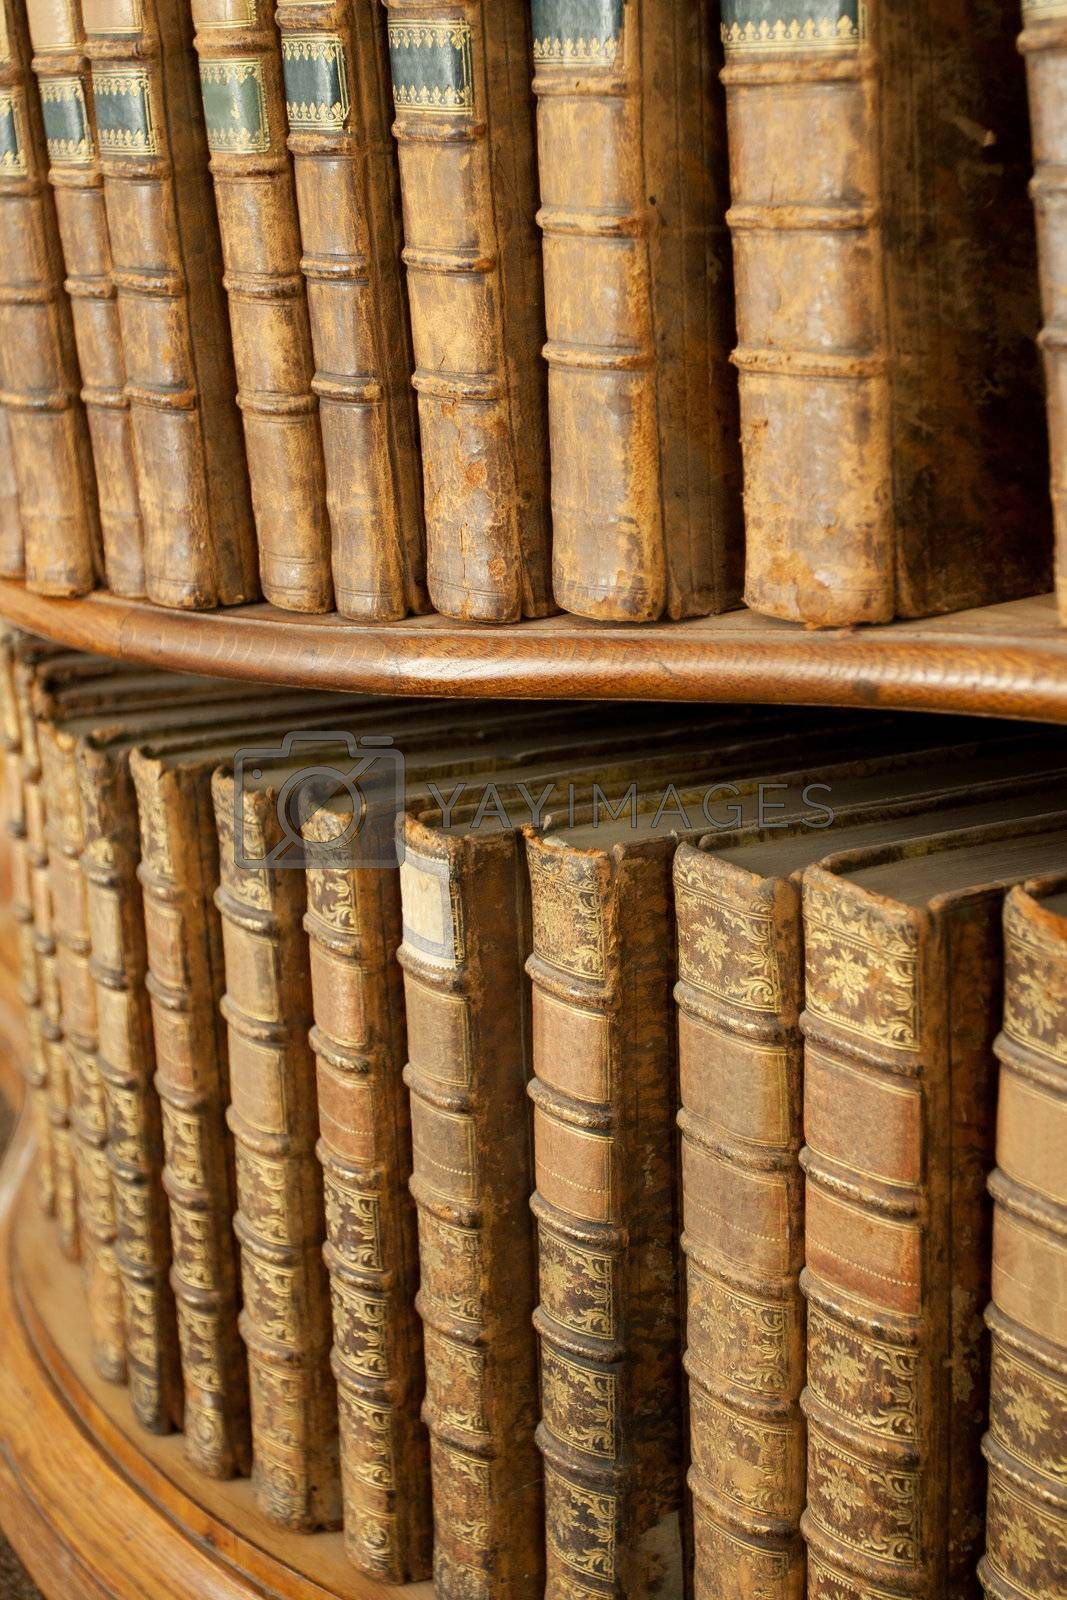 Hard covers of rust old medieval literary books on wooden shelves in bookcase